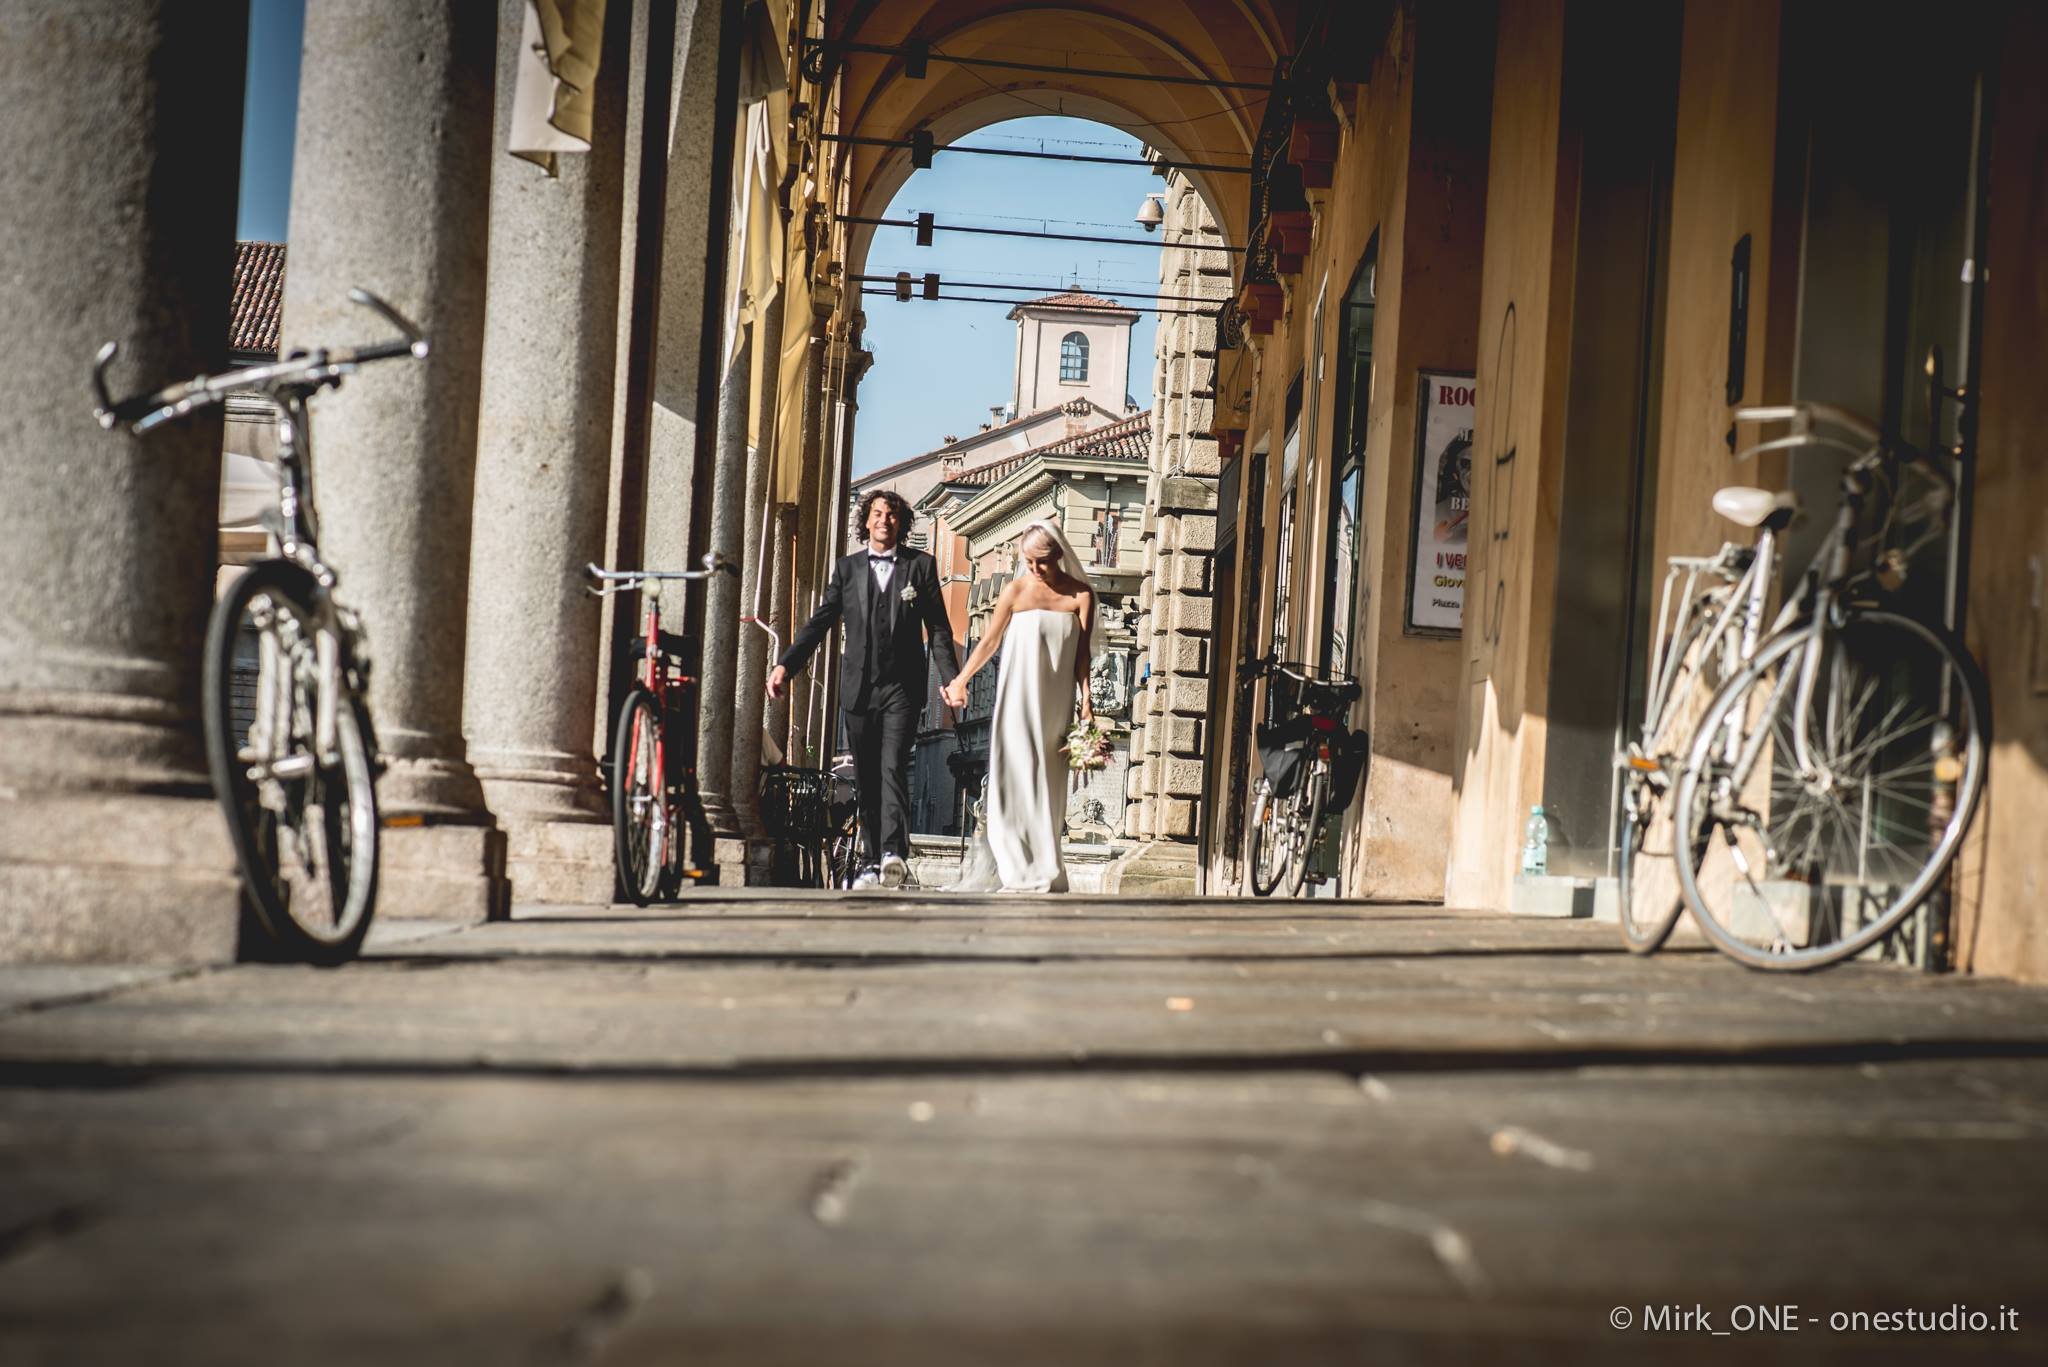 https://lnx.mirkone.it/wp-content/uploads/2015/07/mirk_ONE-fotografo-matrimonio-00826.jpg